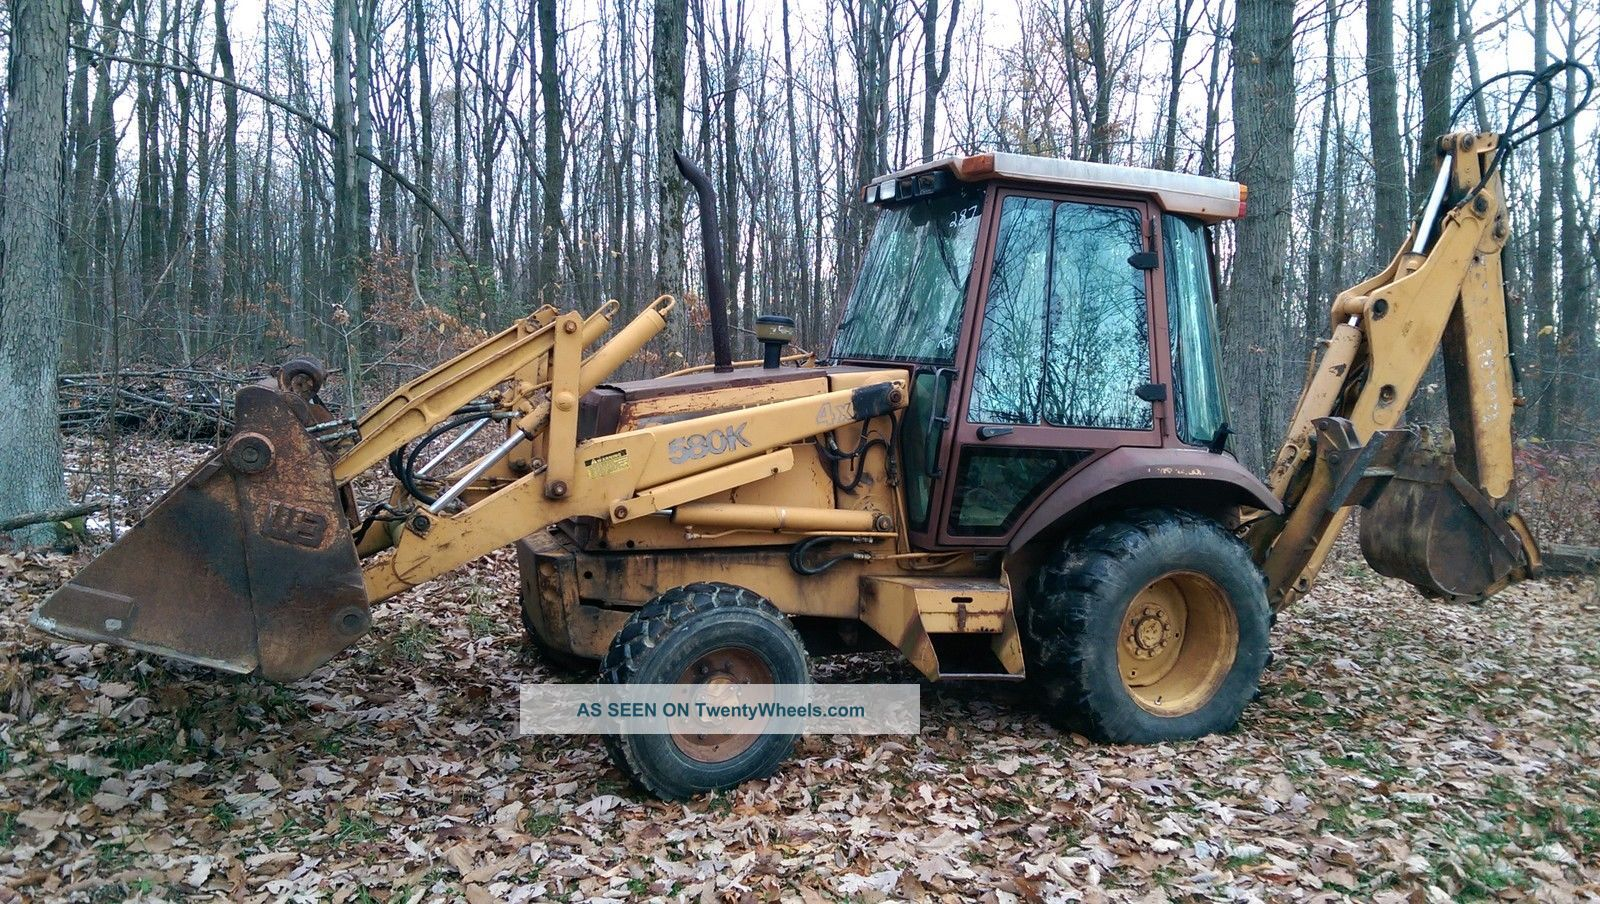 4x4 Case 580k Backhoe With Enclosed Cab With Heat - Extendahoe - Clam Bucket Backhoe Loaders photo